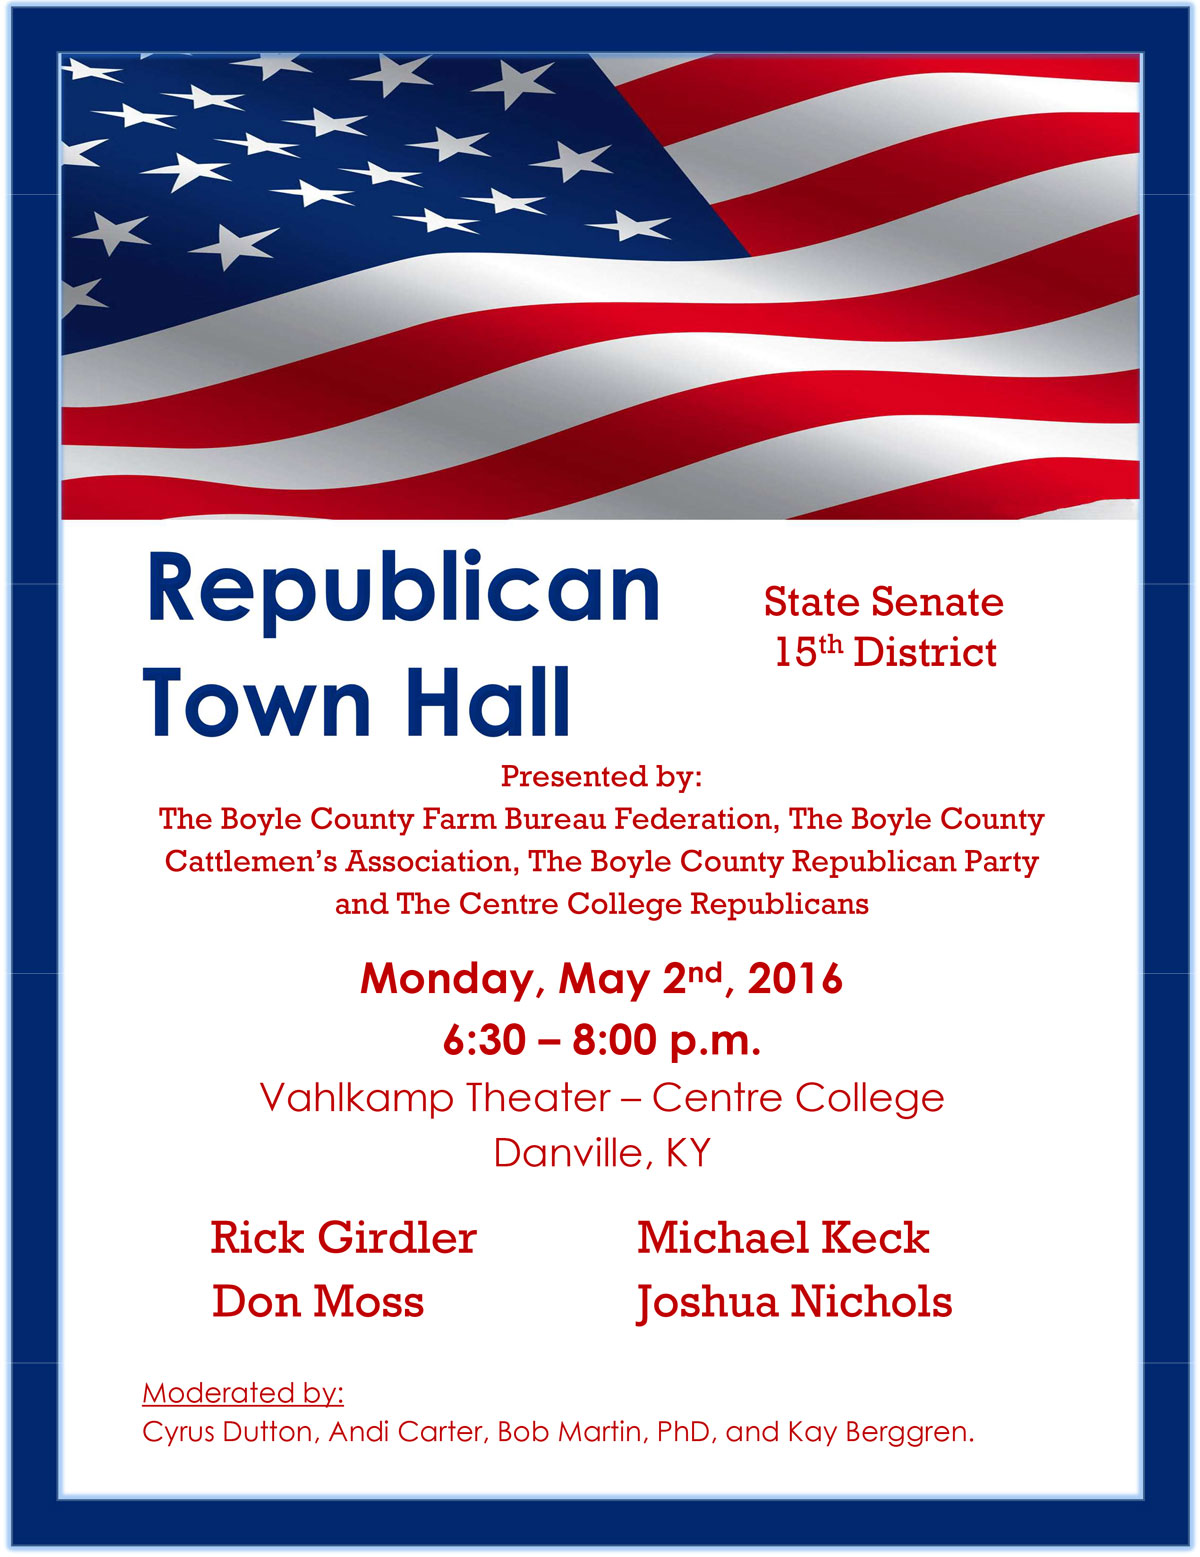 Republican Town Hall in Danville KY May 2 2016